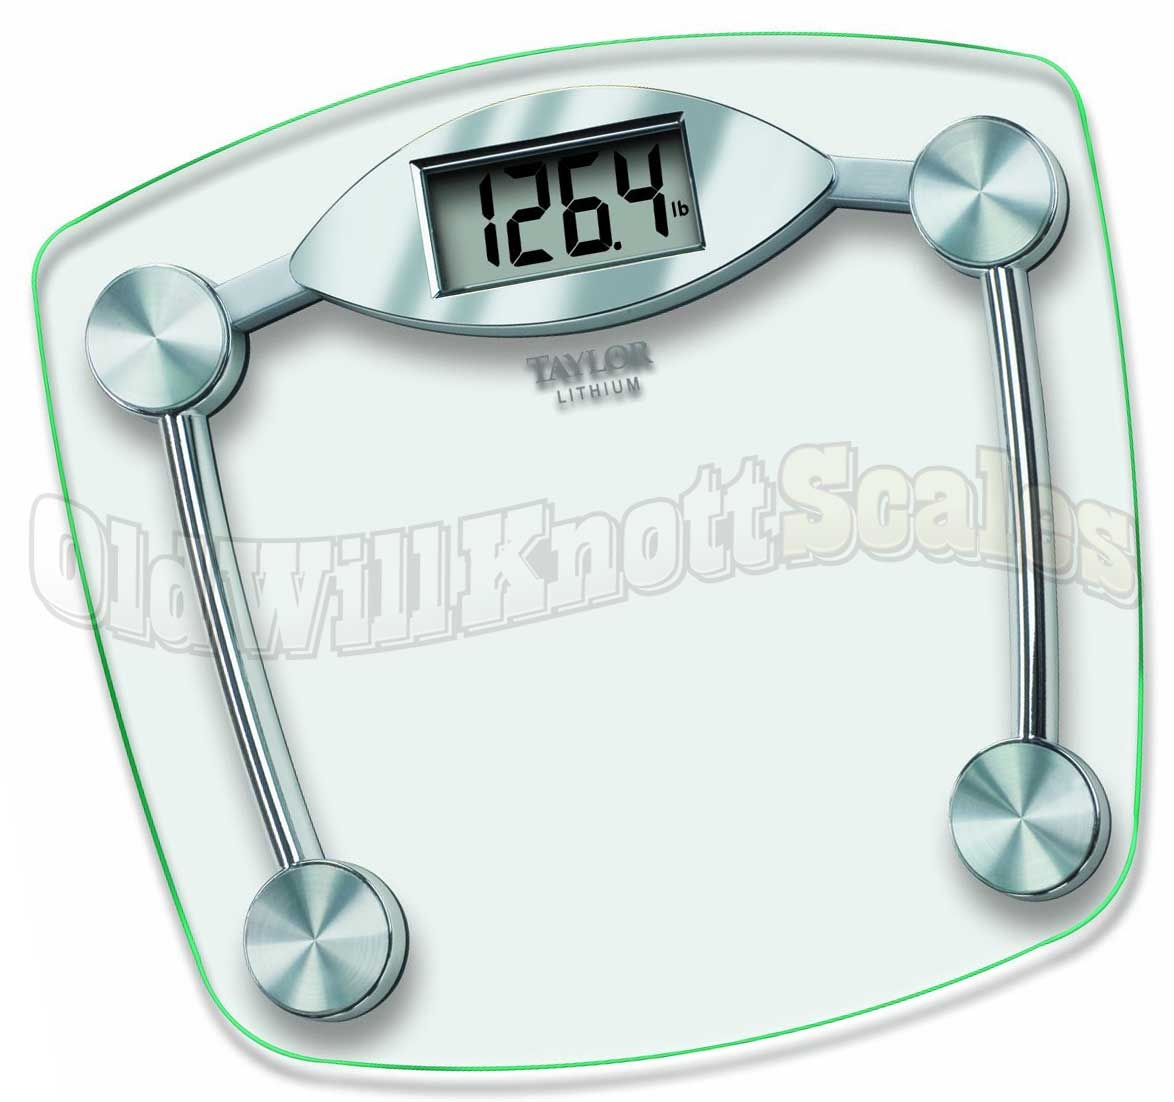 the taylor 7506 glass lithium electronic bathroom scale rh oldwillknottscales com taylor bathroom scale instructions taylor bathroom scale reviews